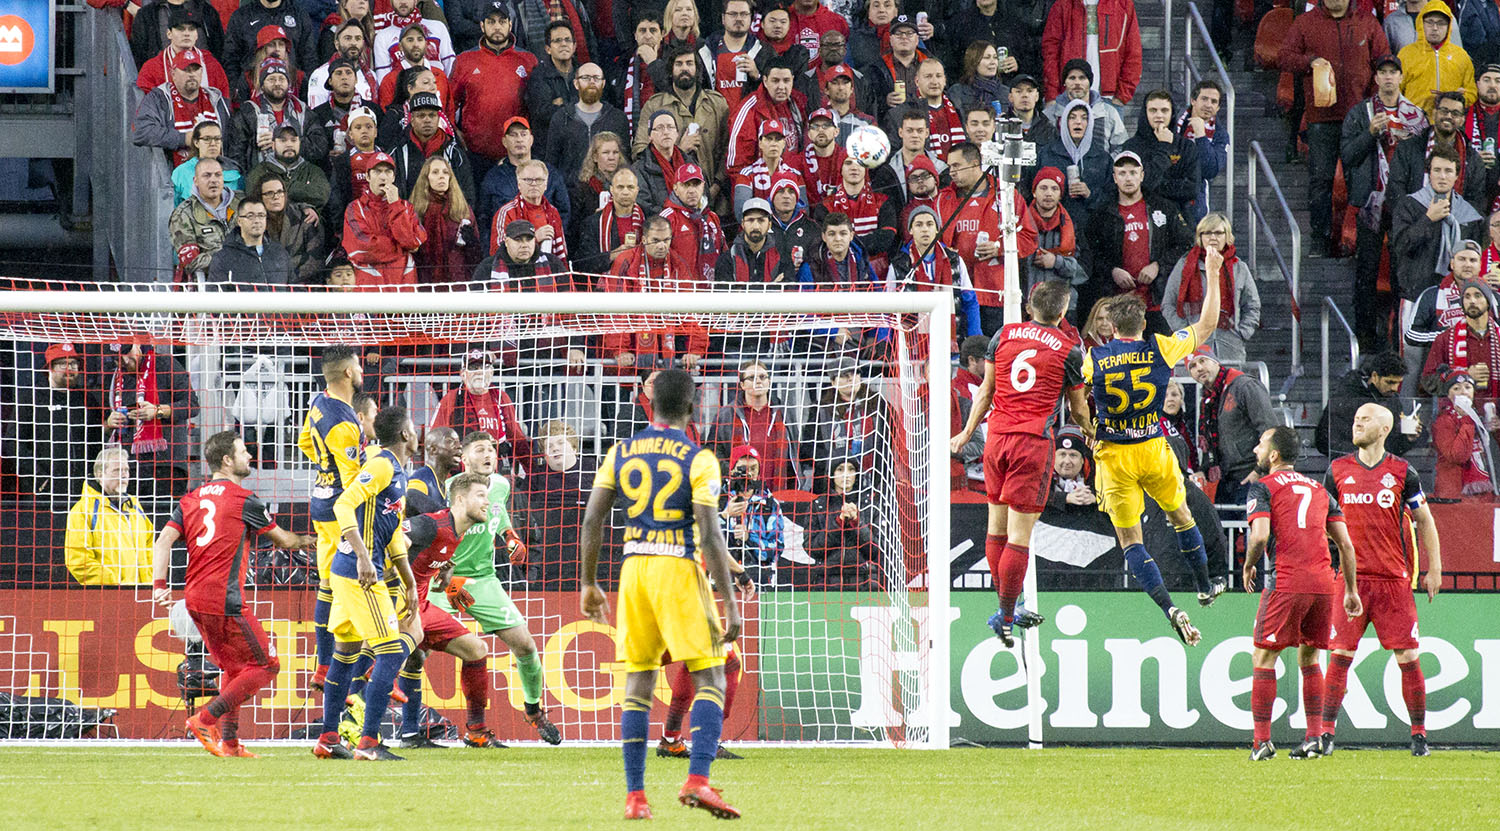 Players go up into the air for a ball in front of the south end at BMO Field. Image by Dennis Marciniak of denMAR Media.